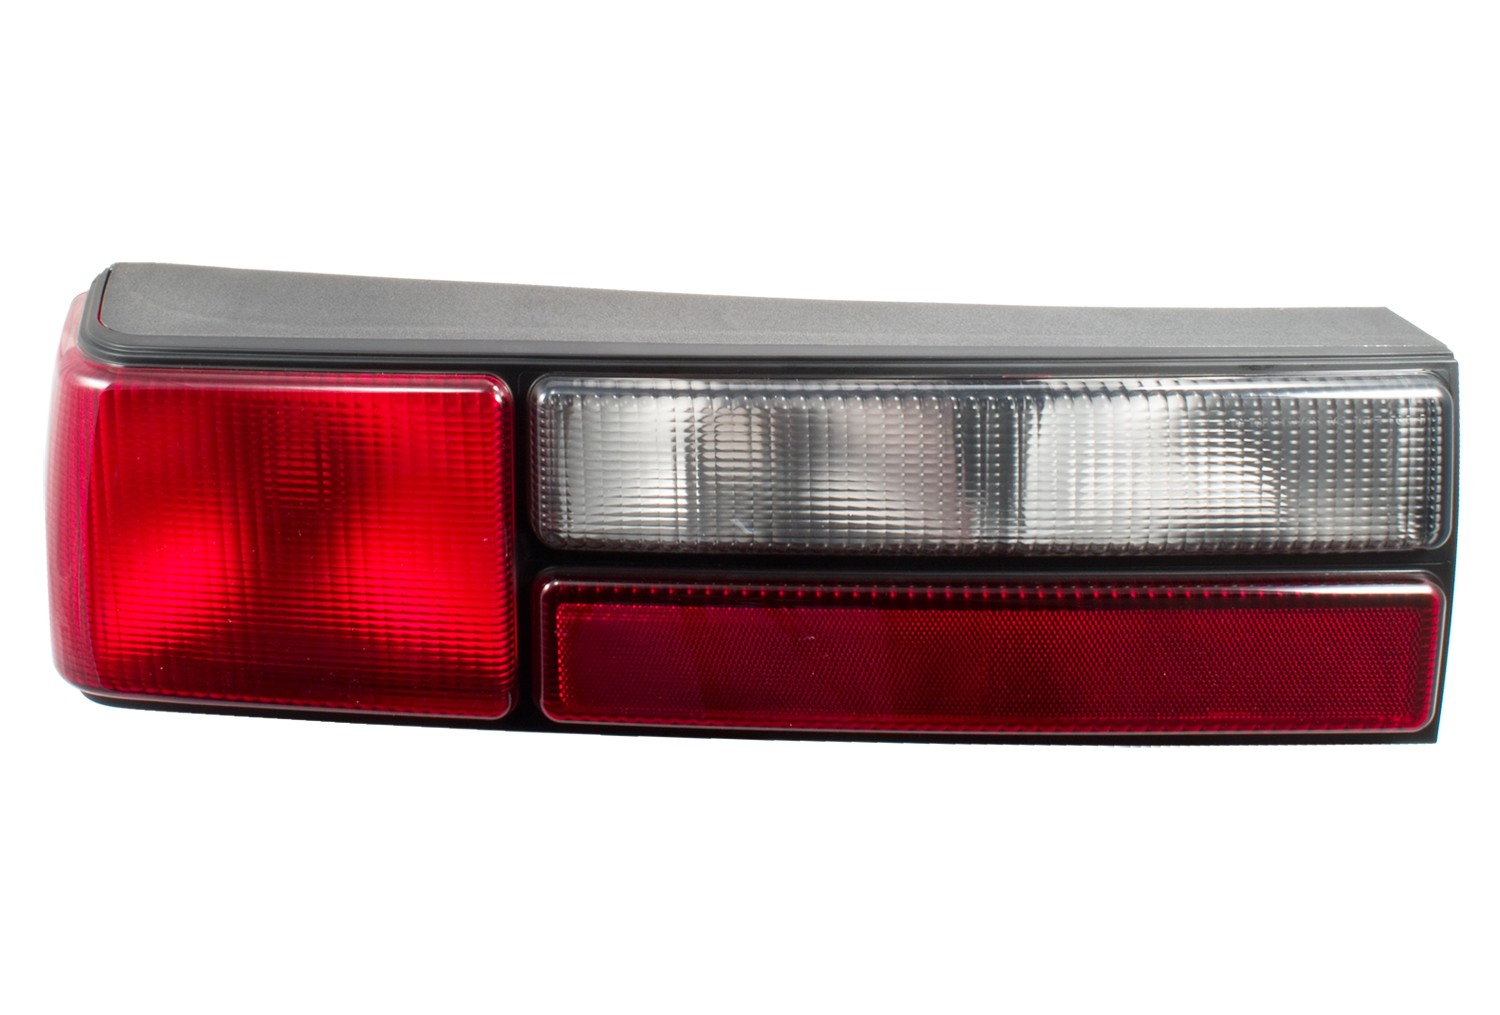 1983-1993 Ford Mustang LX Complete Stock Taillight Tail Light Lens & Housing LH